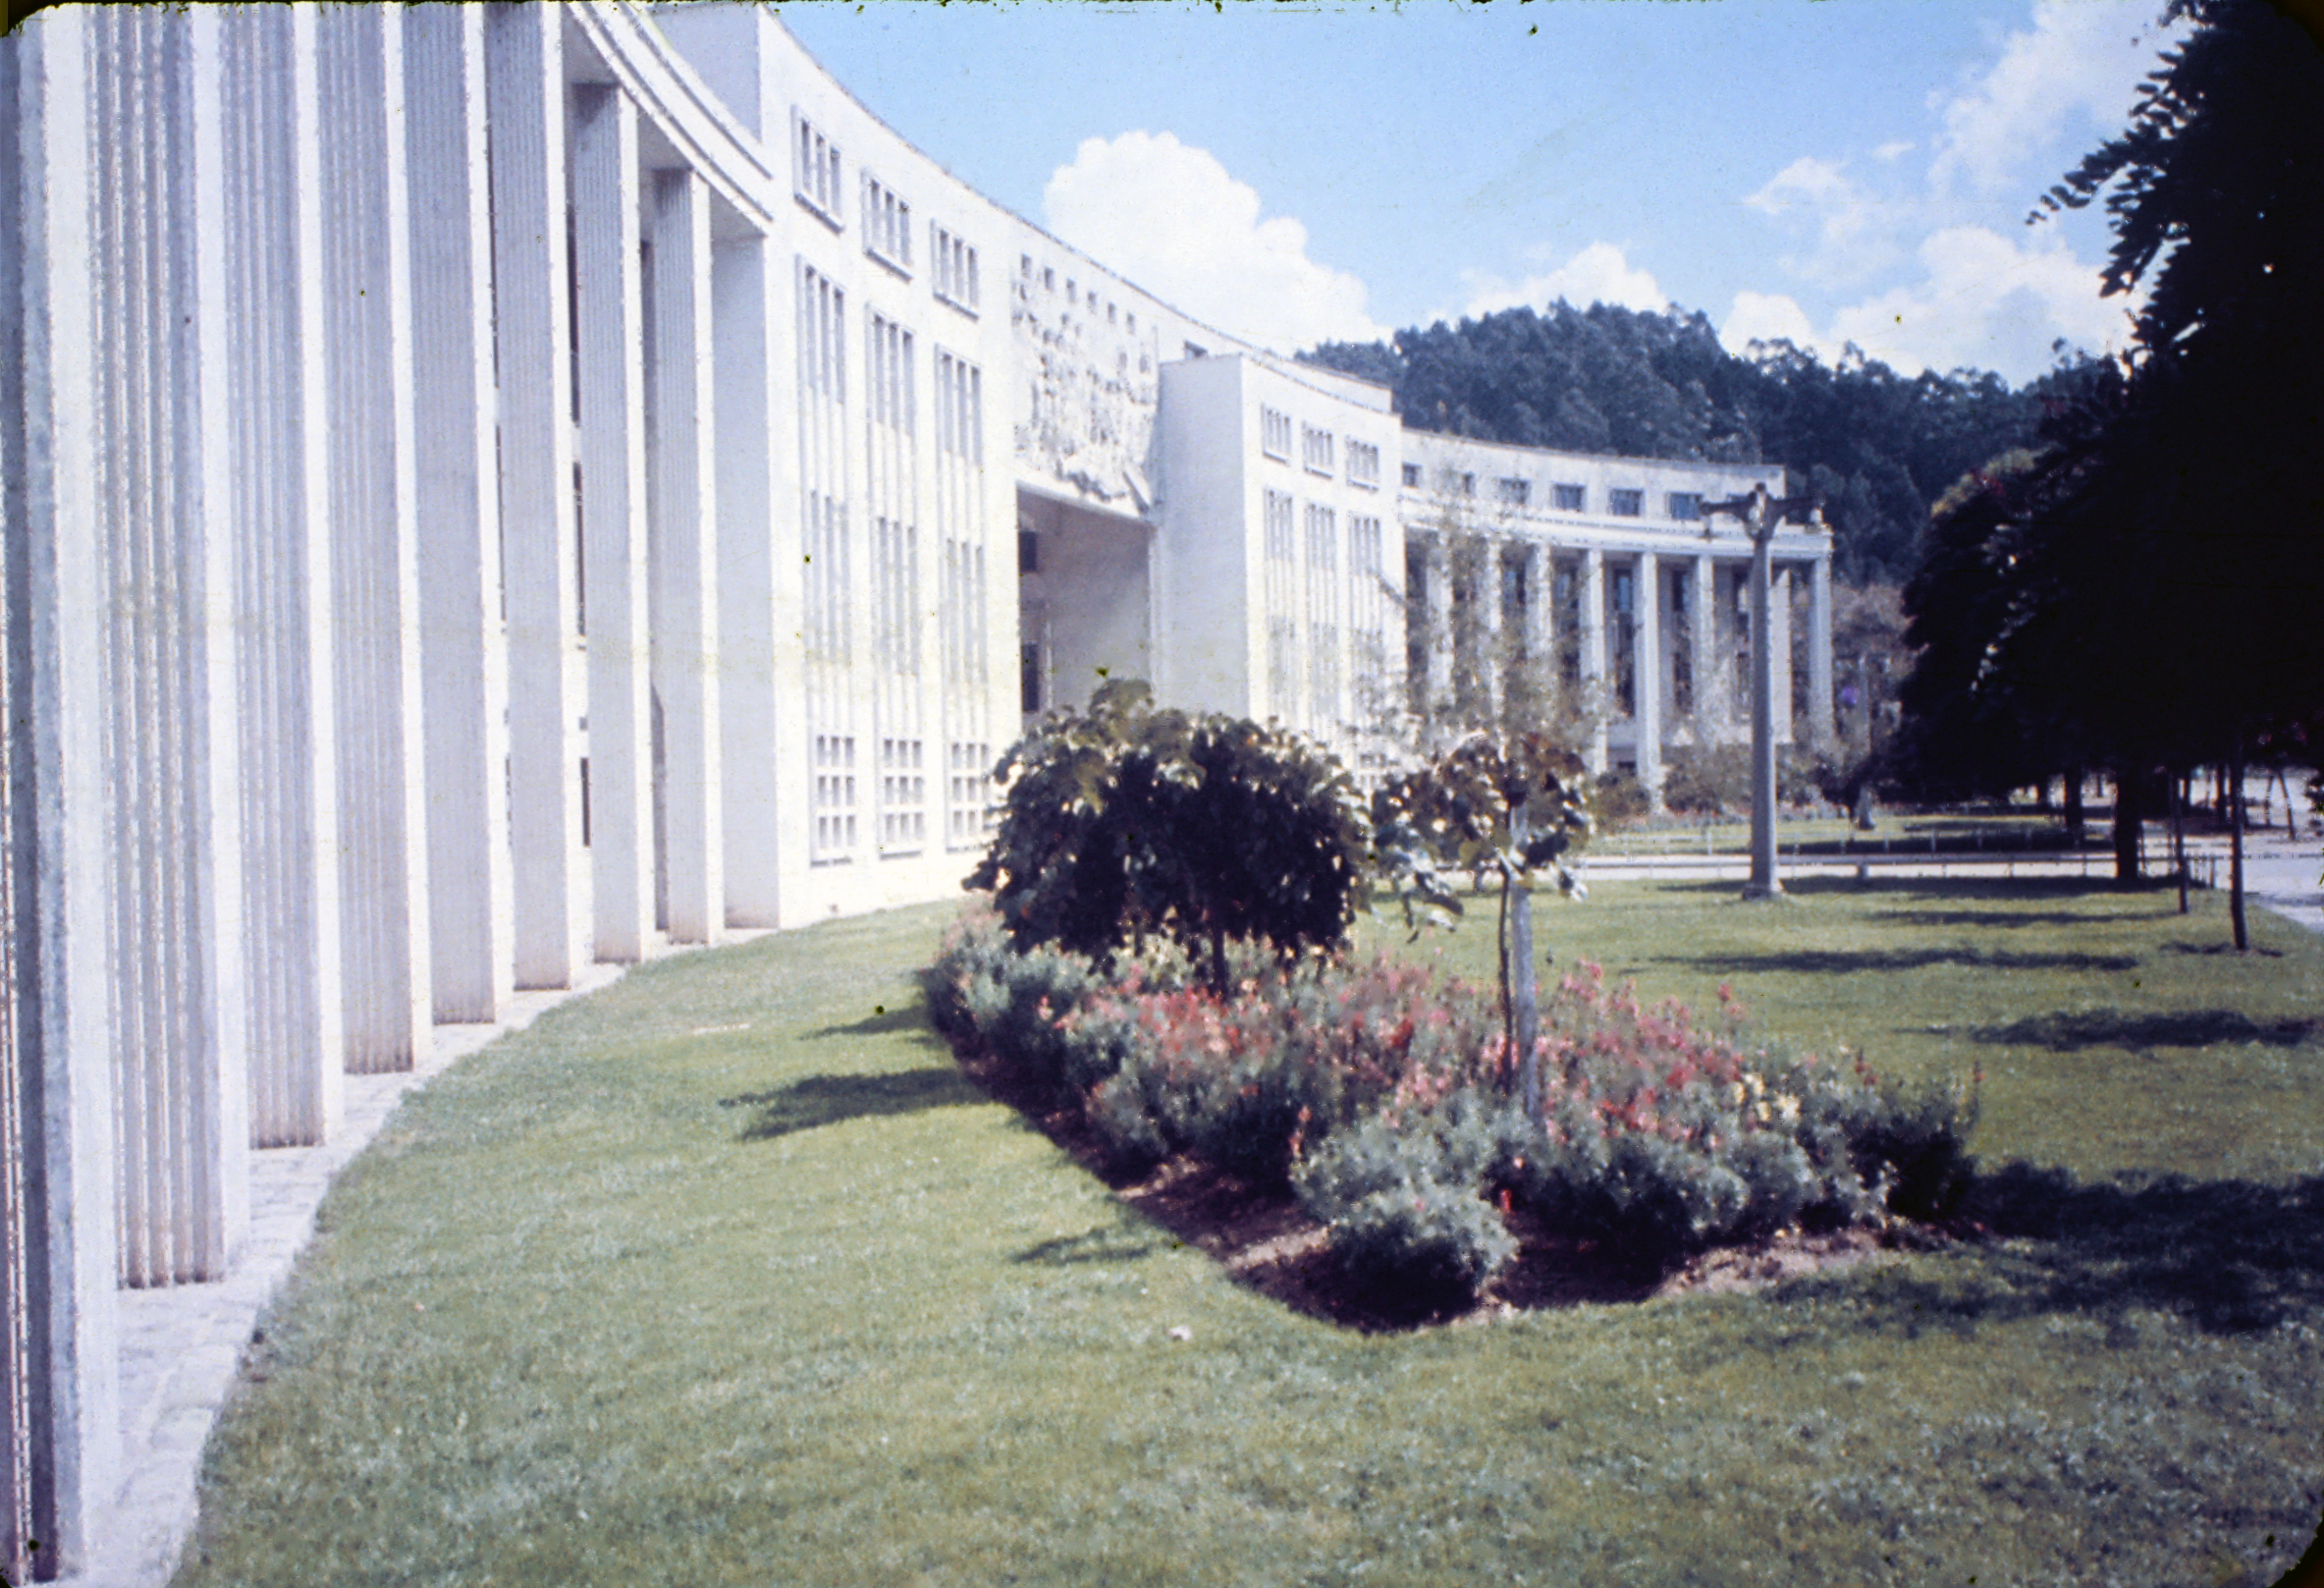 Enterreno - Fotos históricas de chile - fotos antiguas de Chile - Universidad de Concepción, 1960s